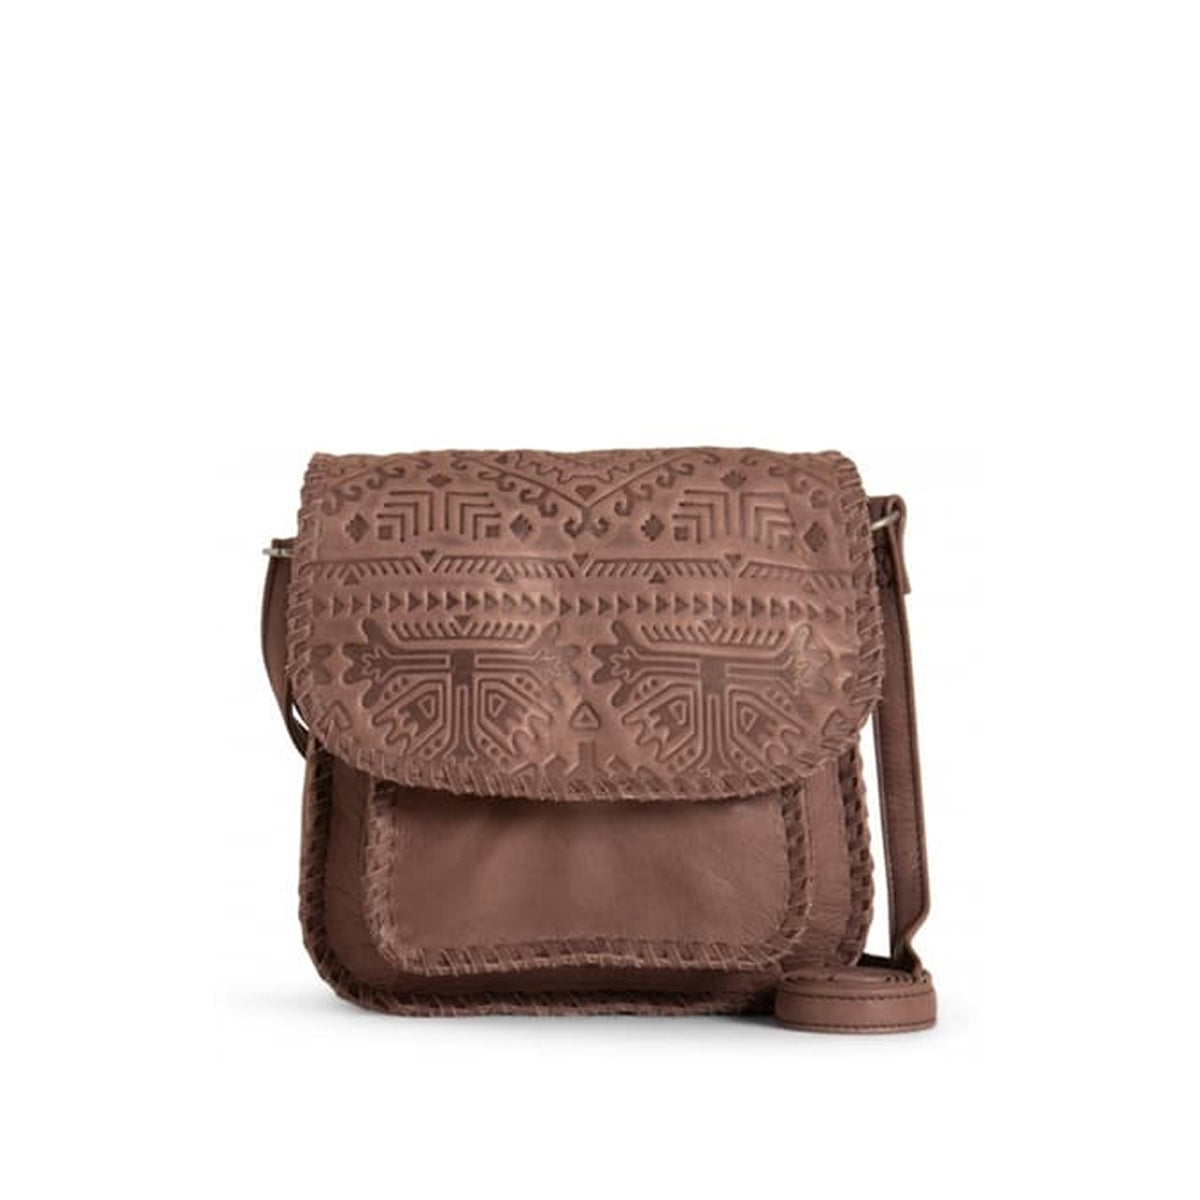 Day & Mood Ebba Crossbody Leather Bag